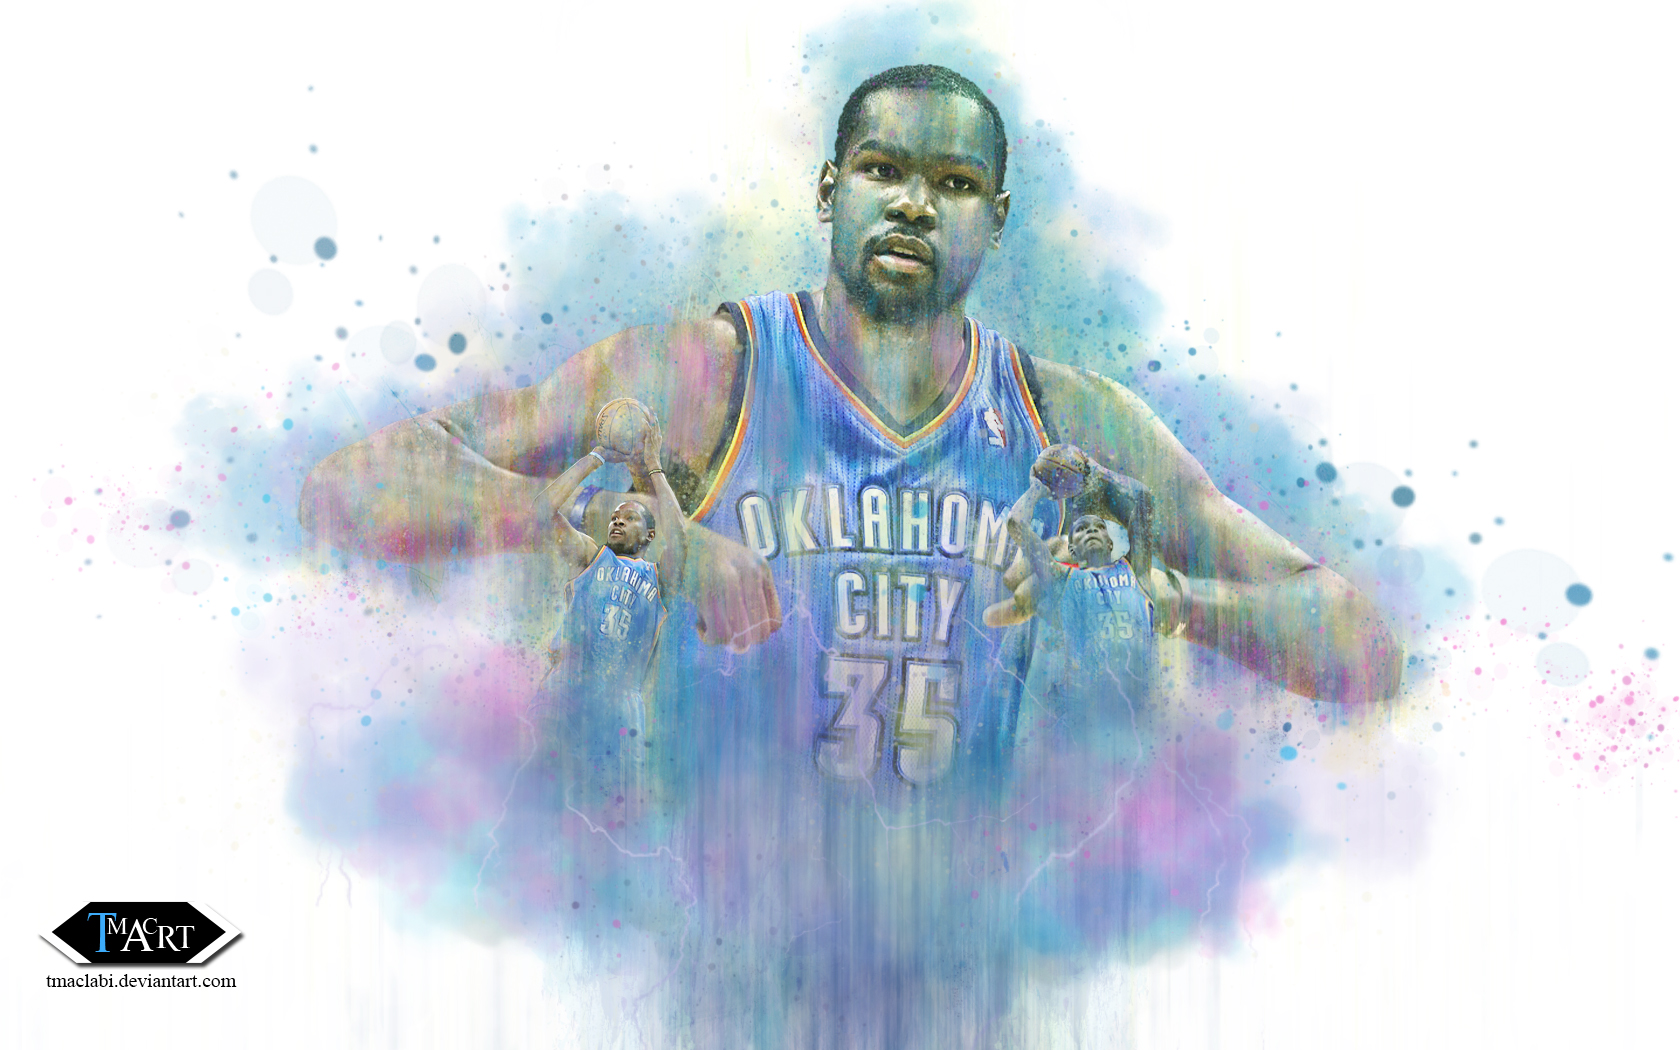 Kevin Durant Ascending Wallpaper by tmaclabi Kevin Durant Ascending Wallpaper by tmaclabi